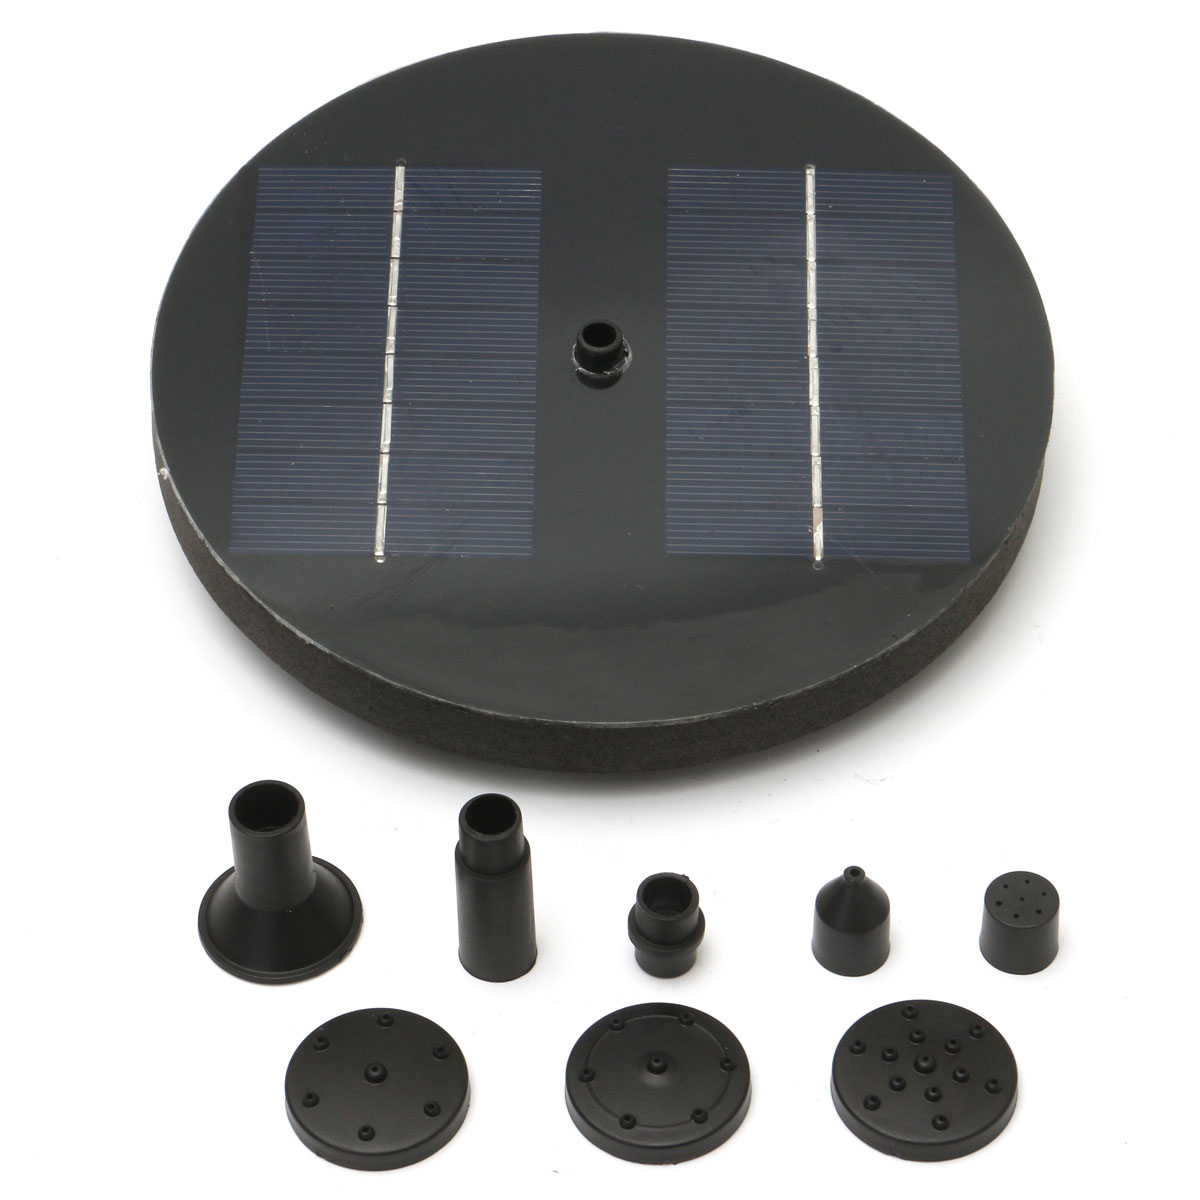 8V 1.6W Solar Powered Fountain Water Pump & Panel Floating Pool Garden Pond Watering